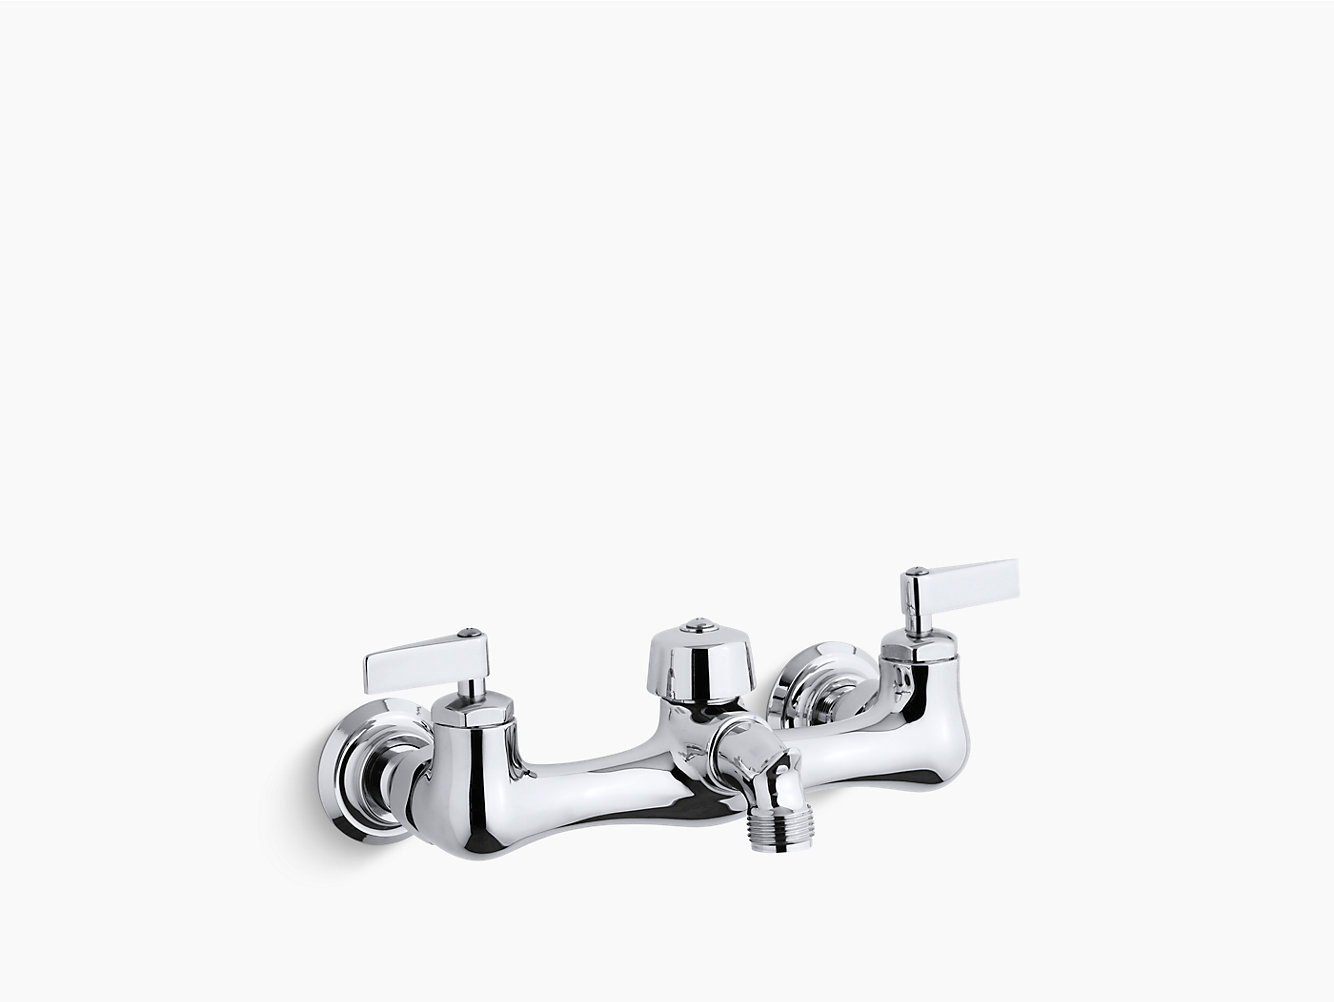 Knoxford double lever handle service sink faucet with 2-1/4 ...